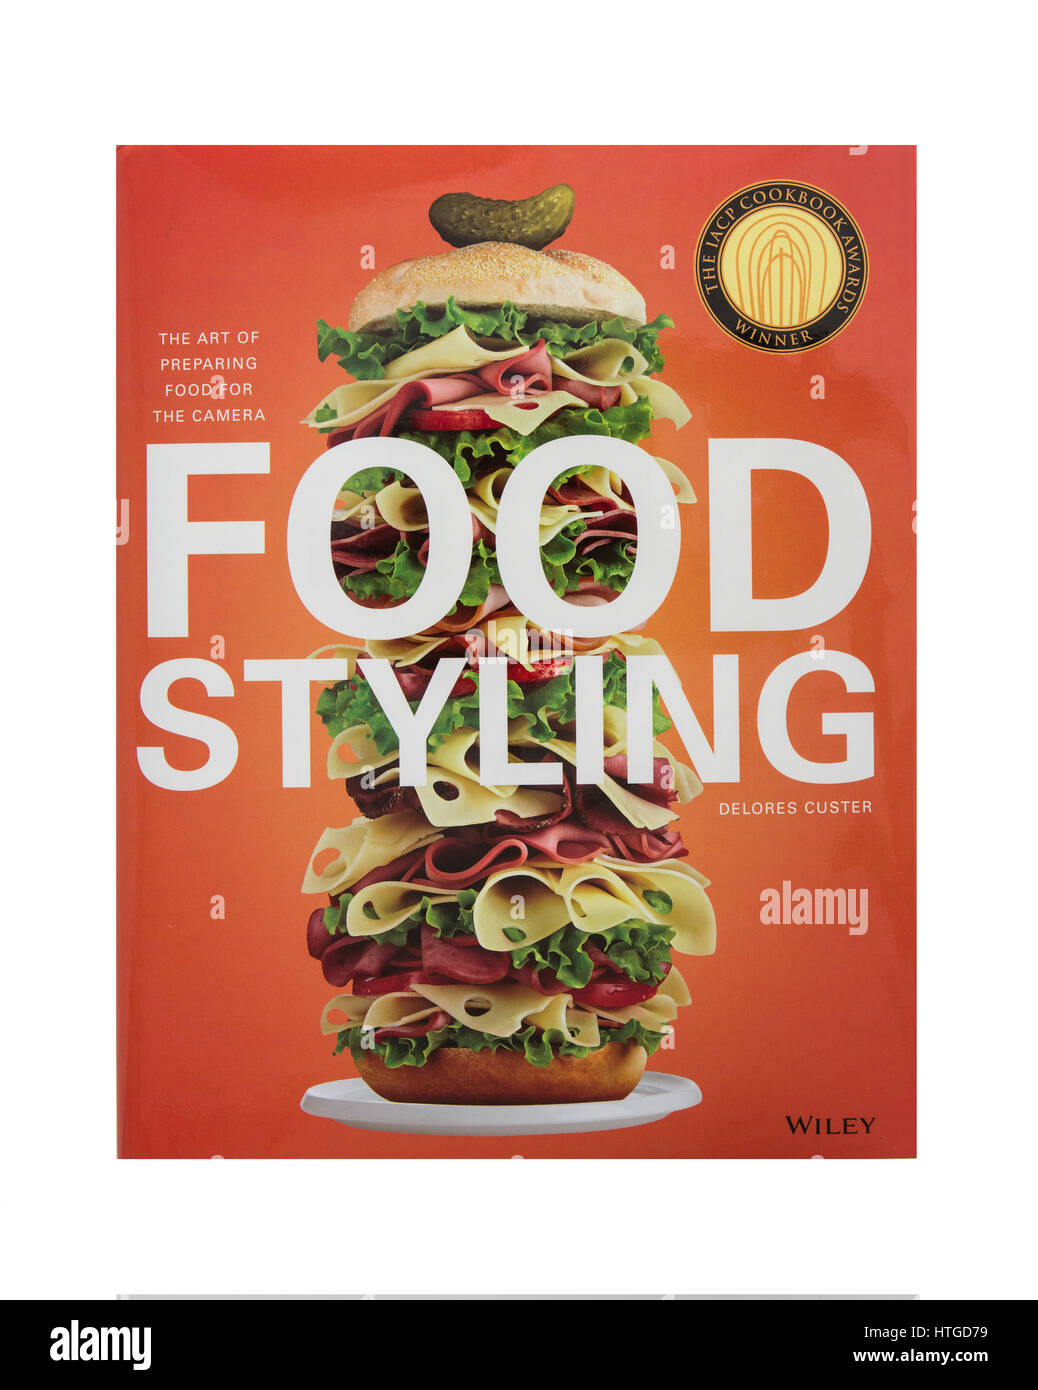 Food Styling By Delores Custer, the art of prepairing food for the camera published by Wiley - Stock Image